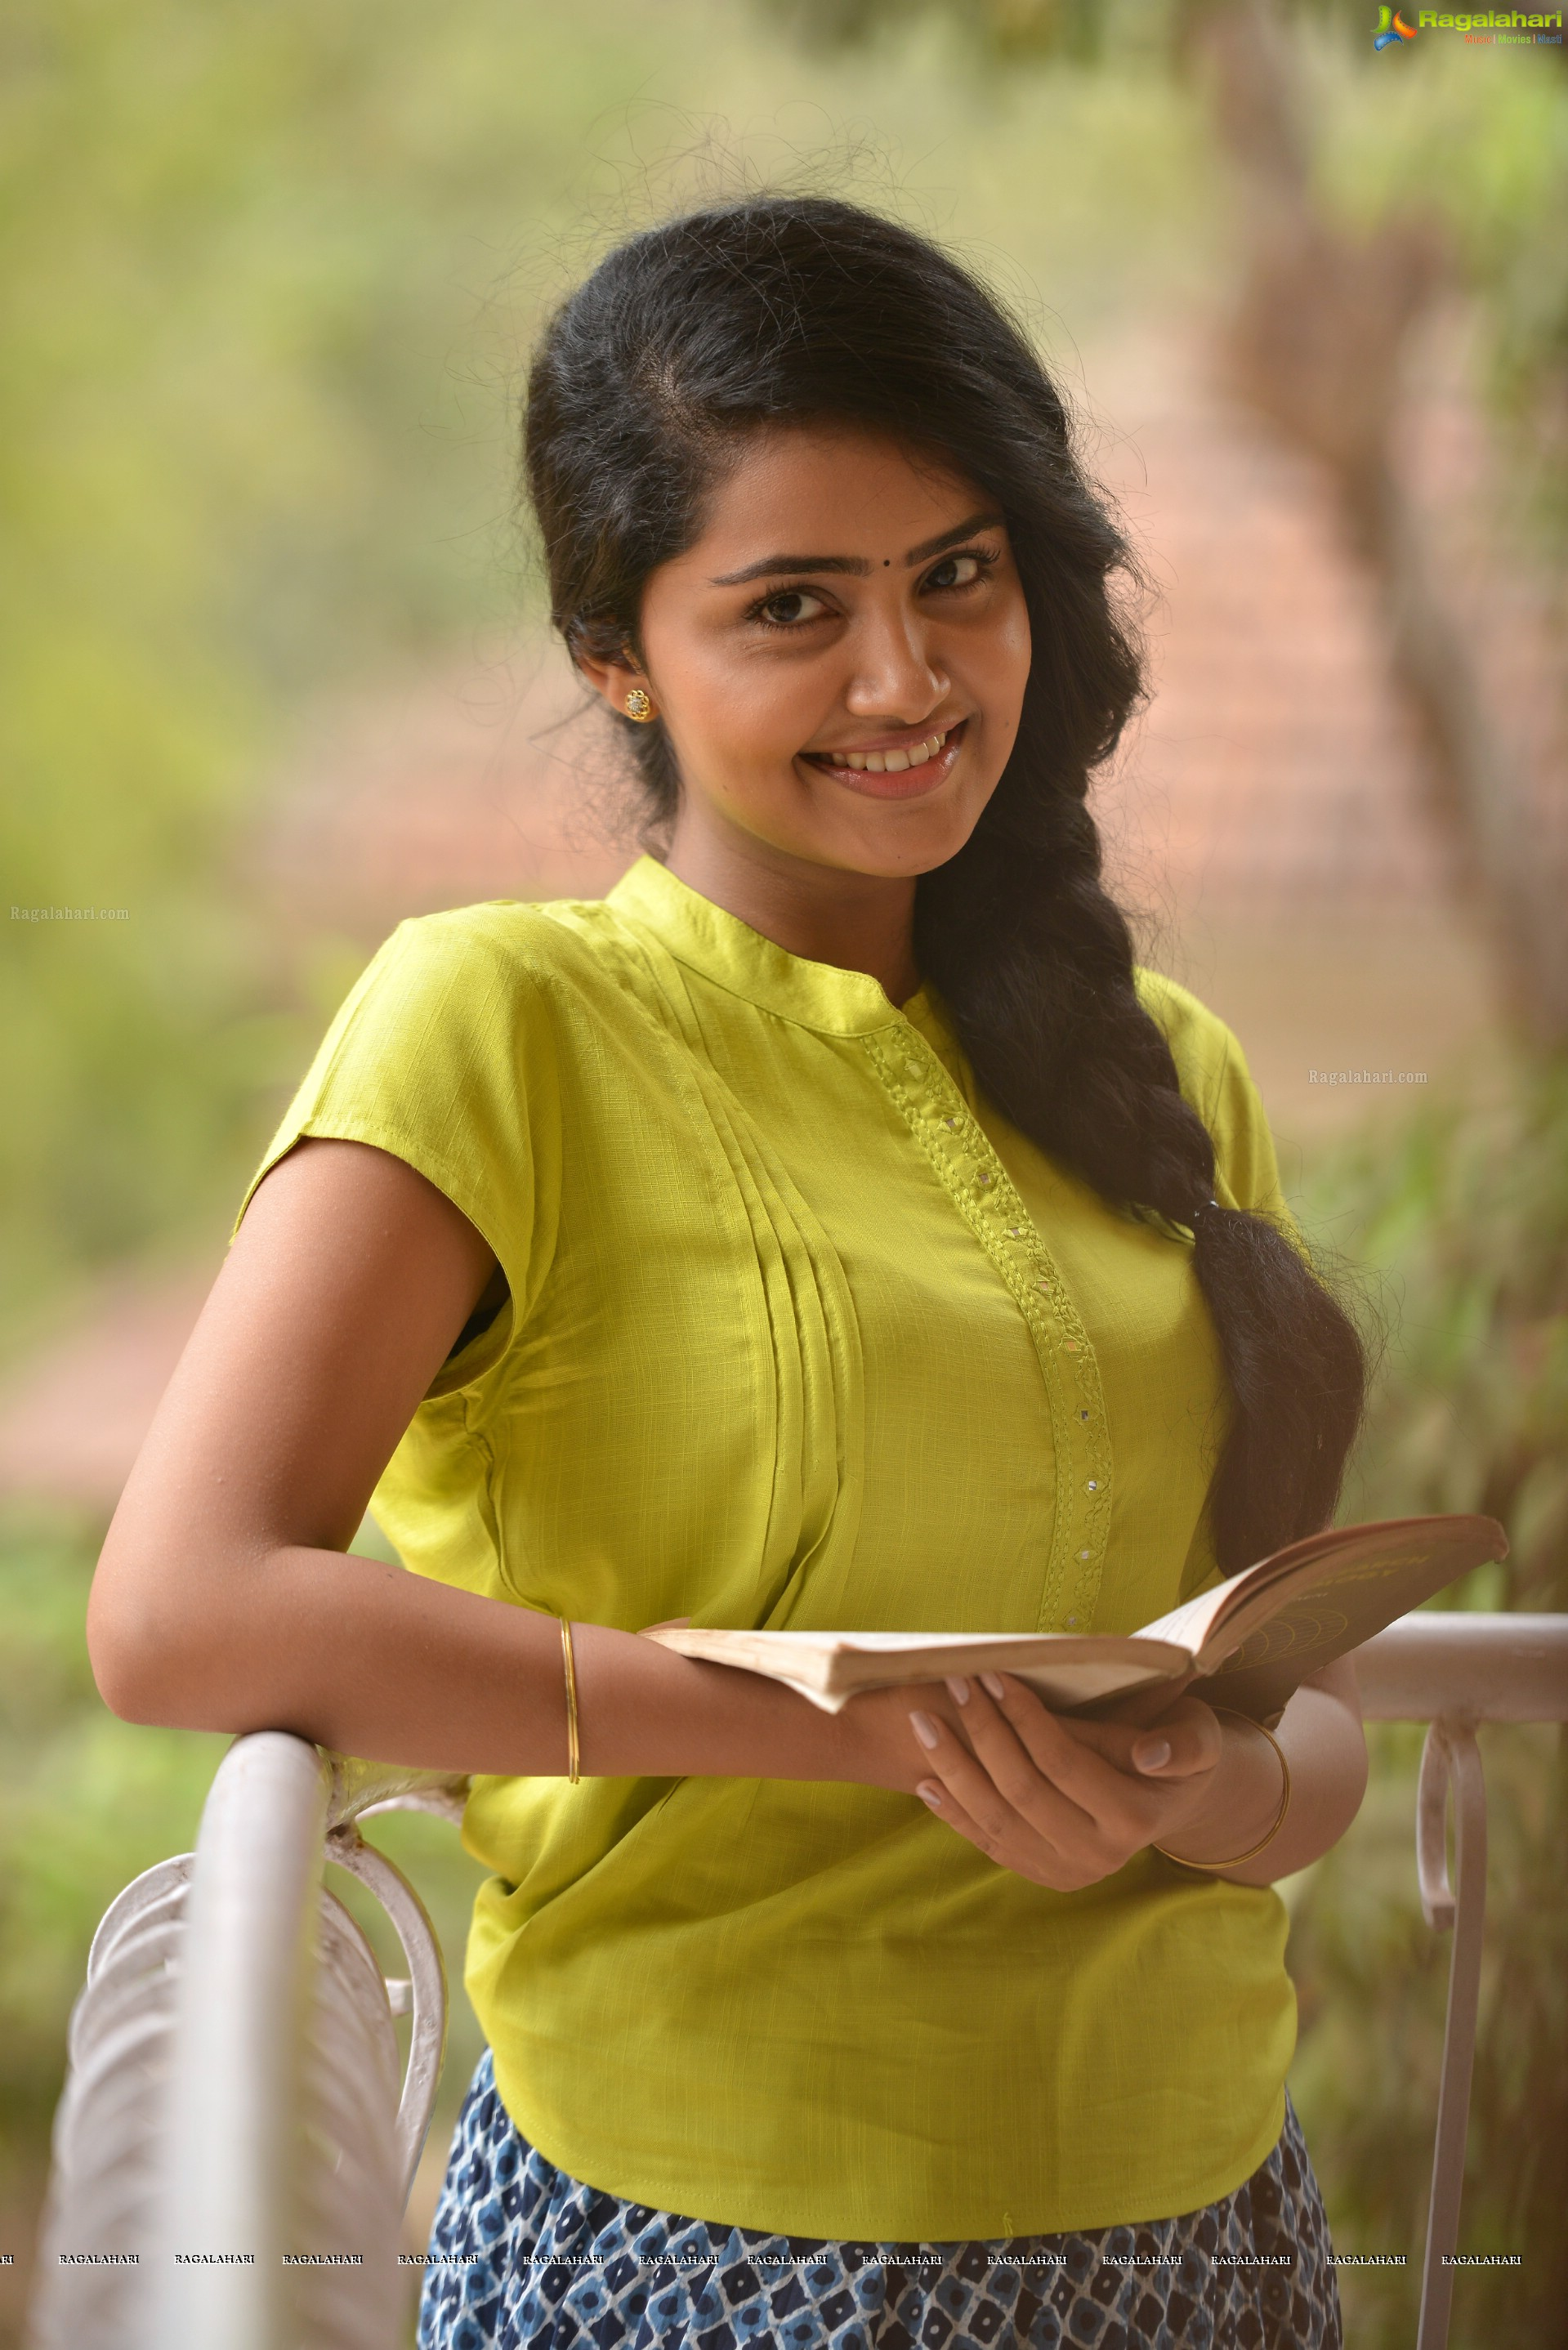 Anupama Parameswaran In Premam Hd Images 17899 Loadtve